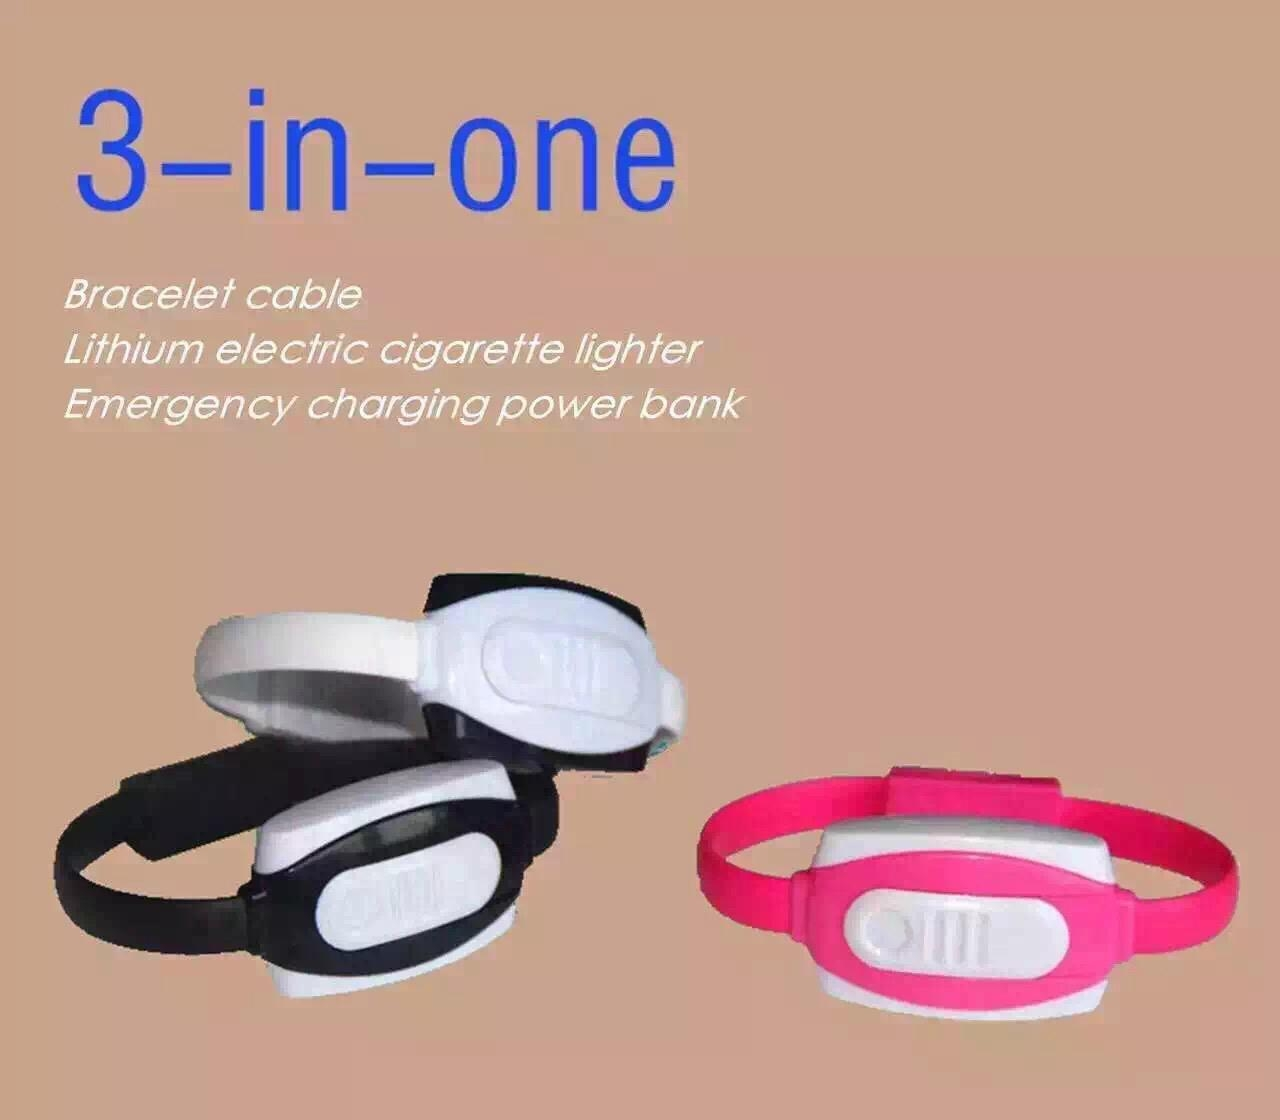 new 3 in 1 bracelet cable for iPhone or Samsung 1